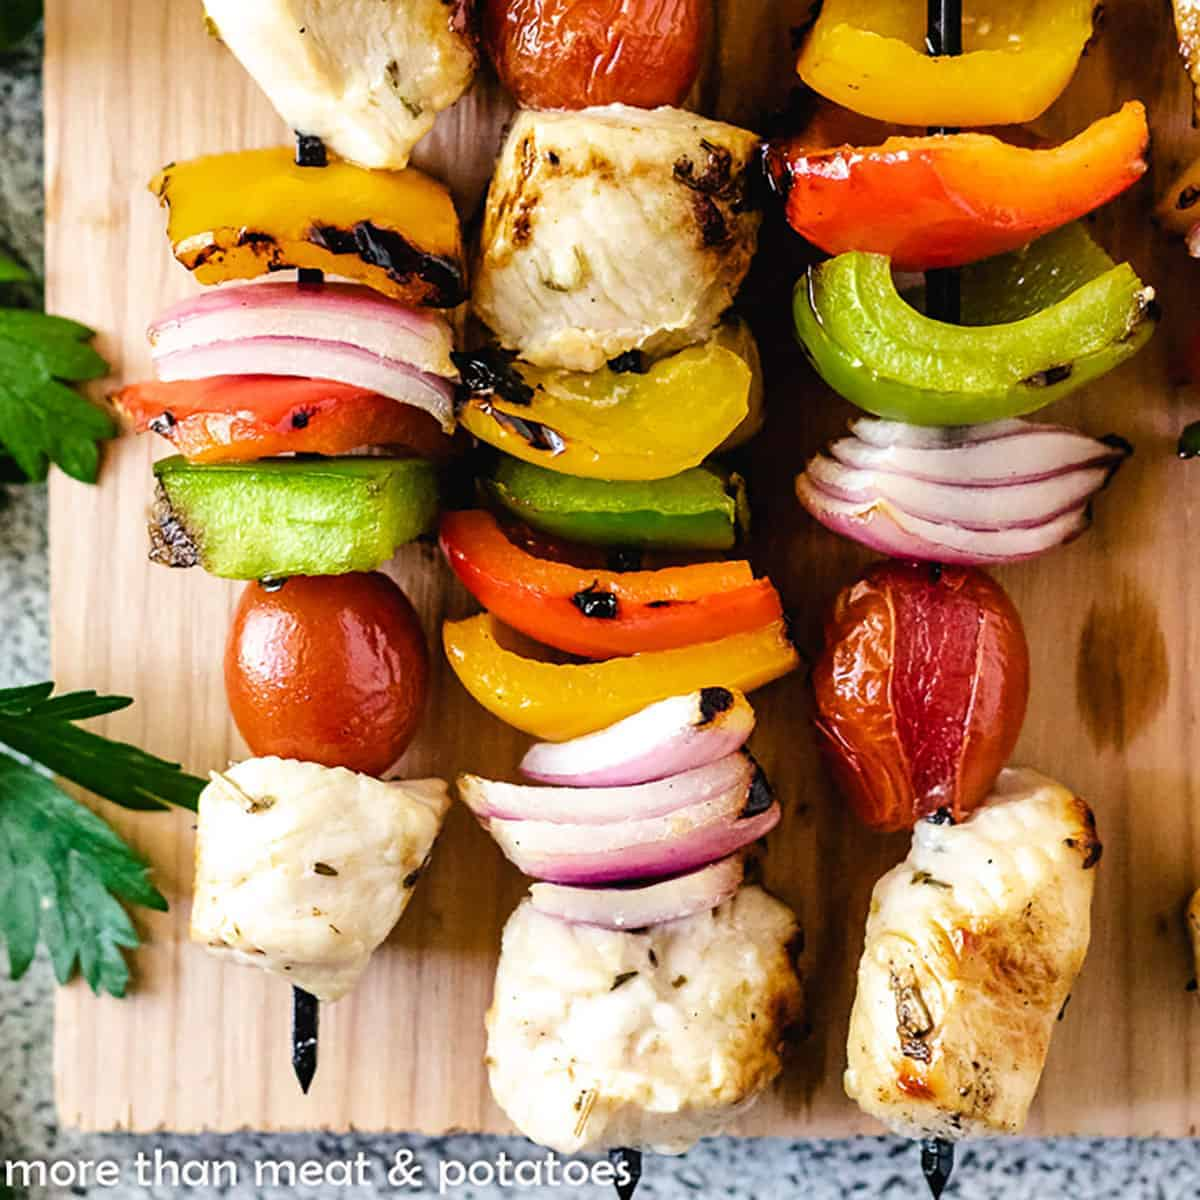 Three skewers with grilled chicken and vegetables on a cutting board.